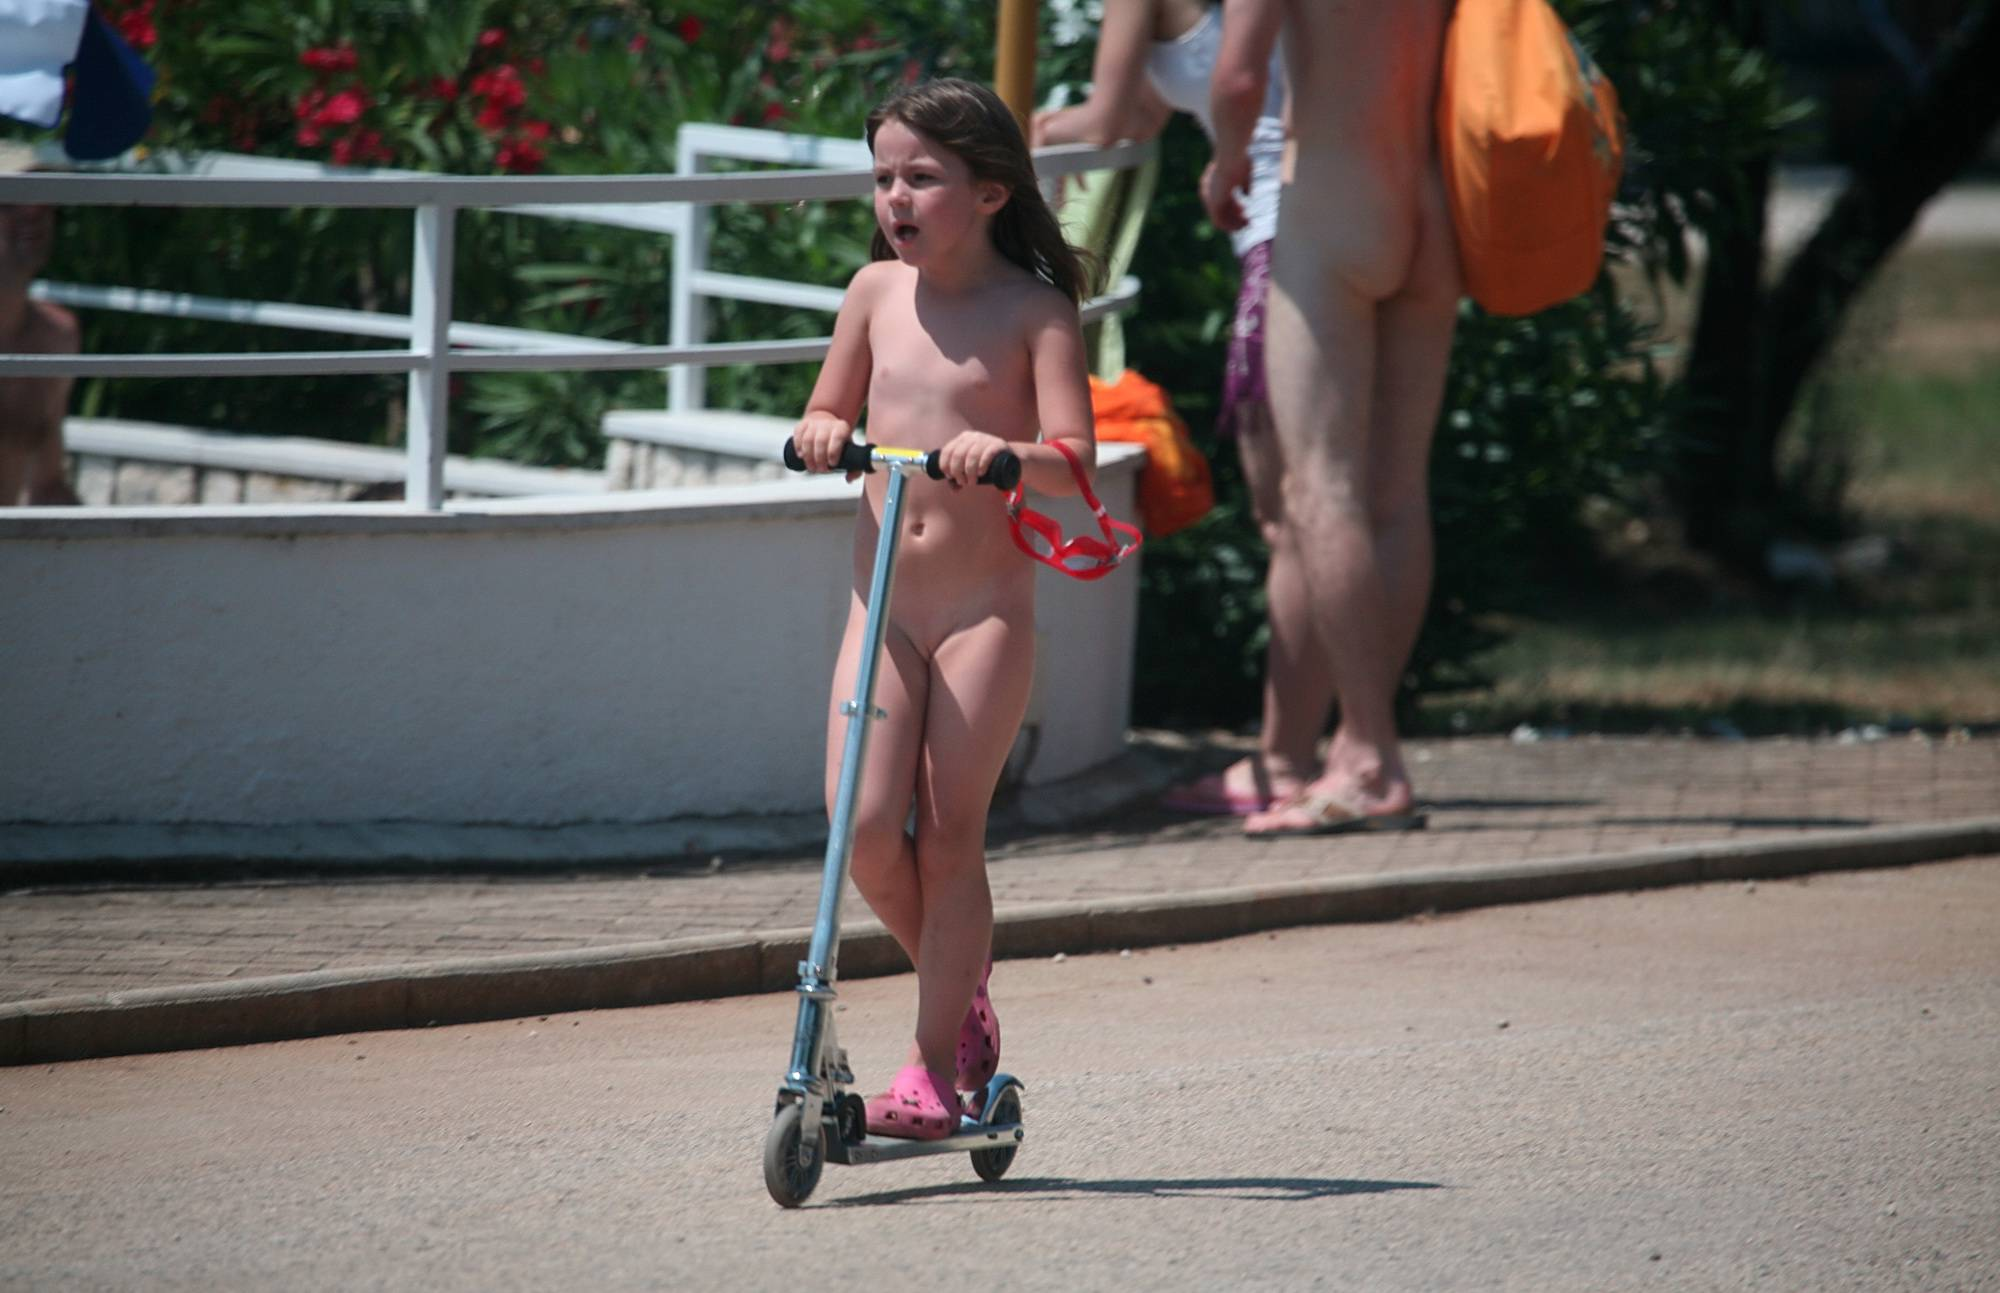 Nudist Pictures Outdoor Scooters and Bikes - 2